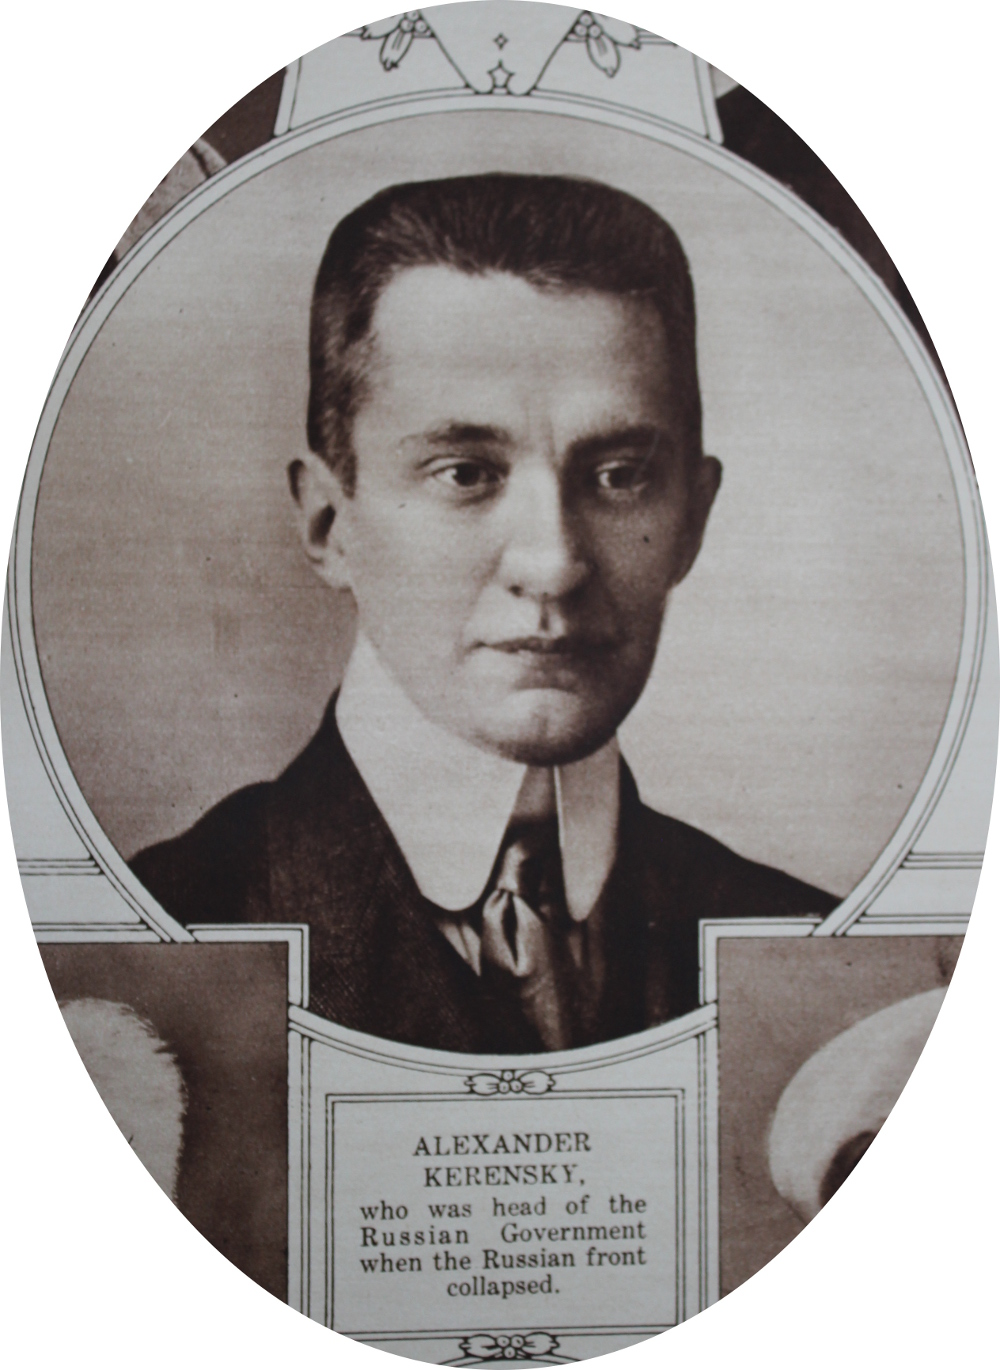 http://wwitoday.com/images/6315-p69c-Alexander-Kerensky-ellipse-scale40-IMG_3440.JPG